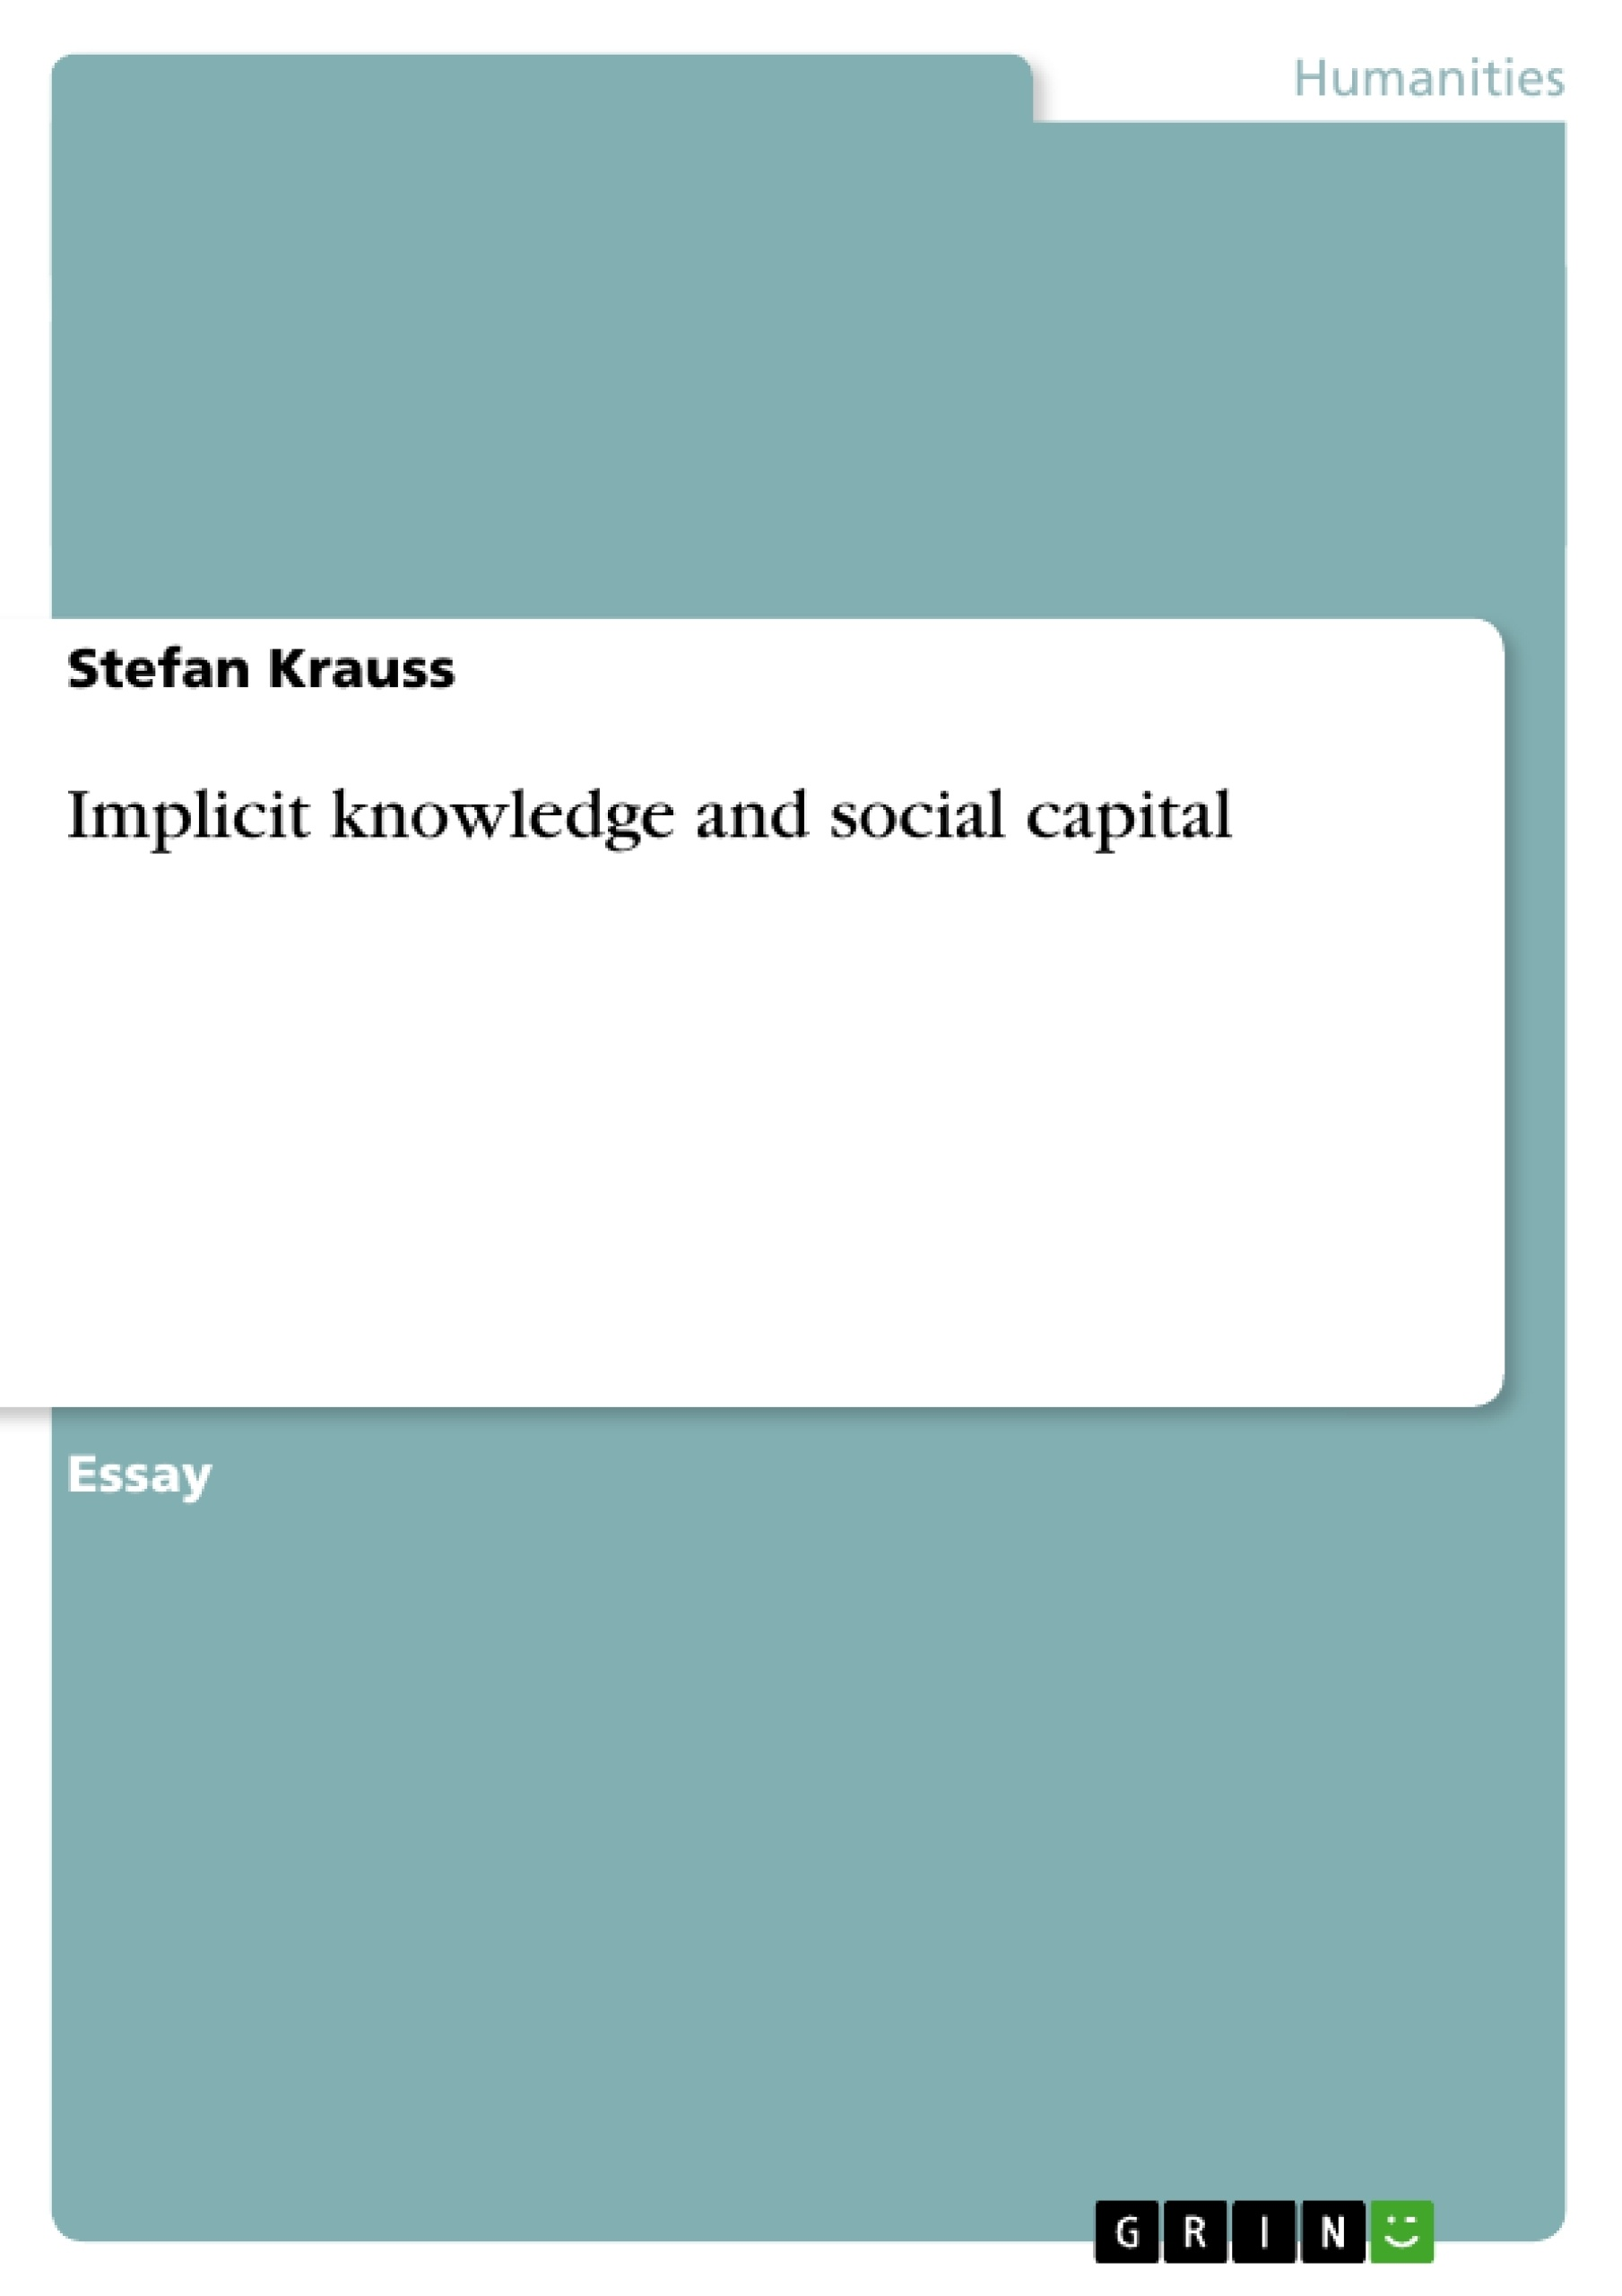 Title: Implicit knowledge and social capital